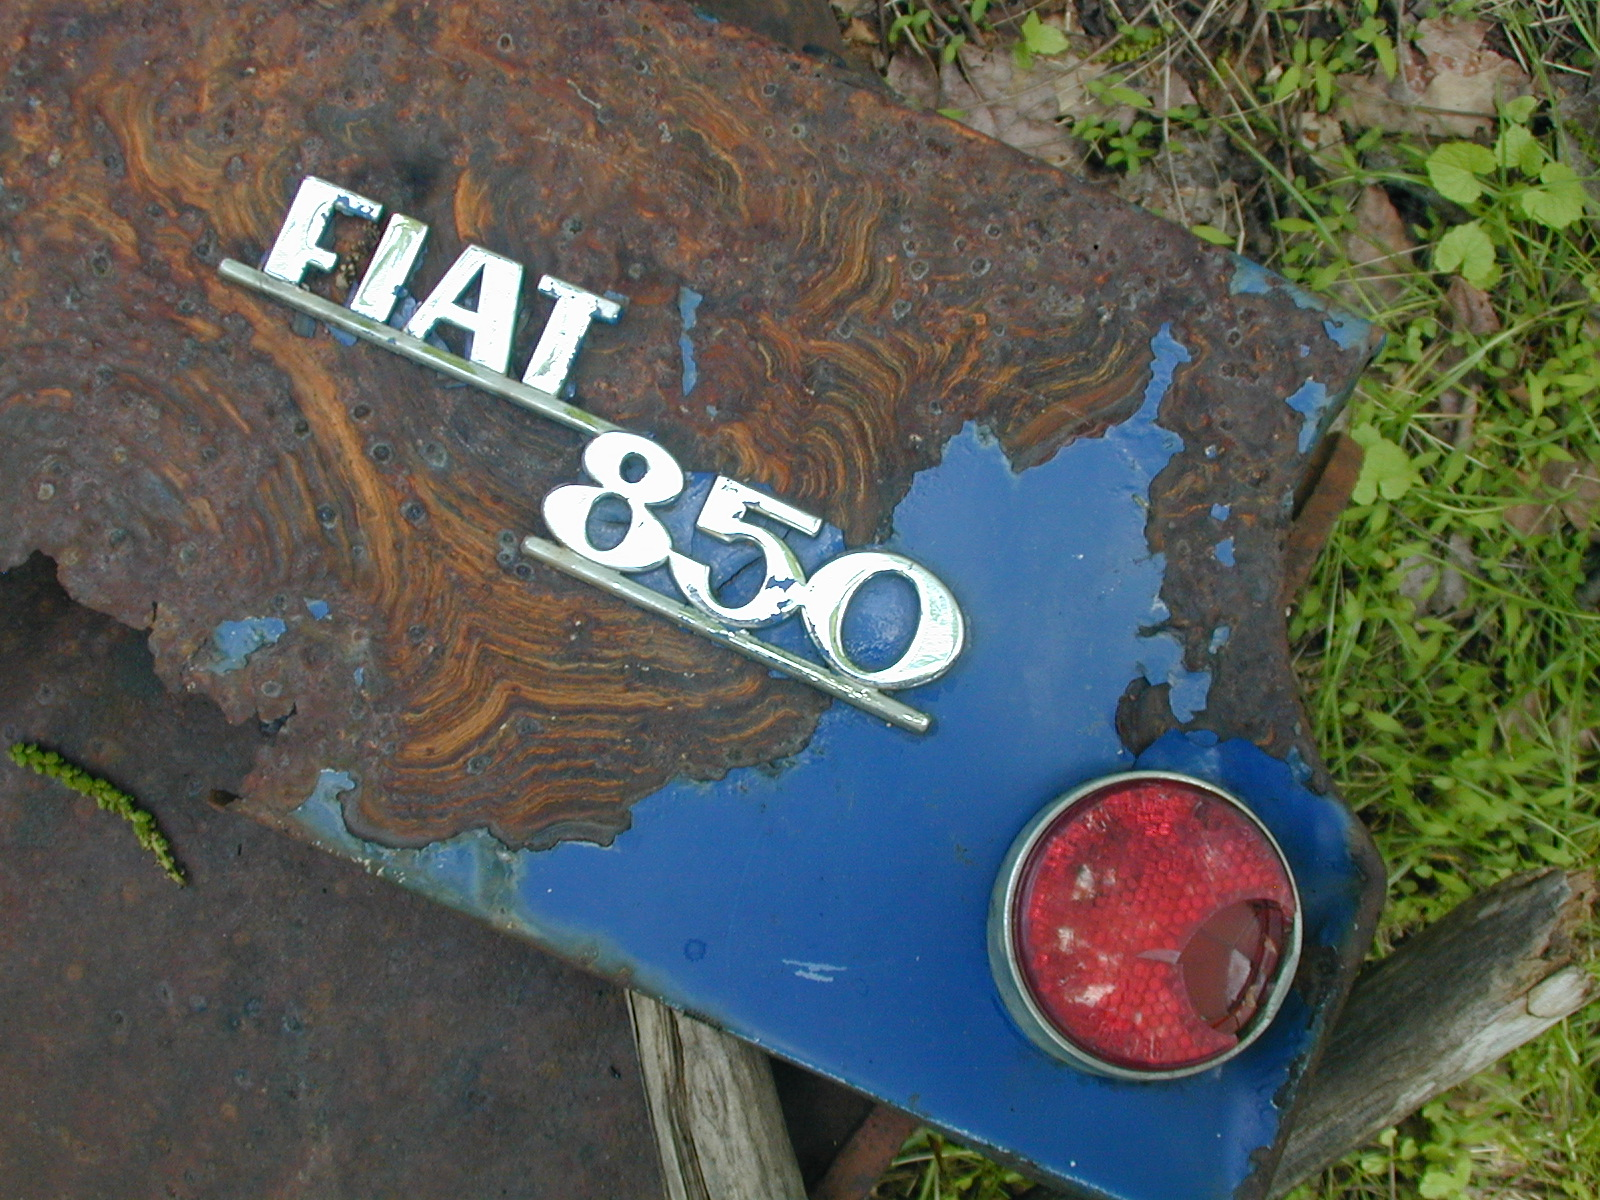 One of the few pieces of a Fiat 850 to retain any color